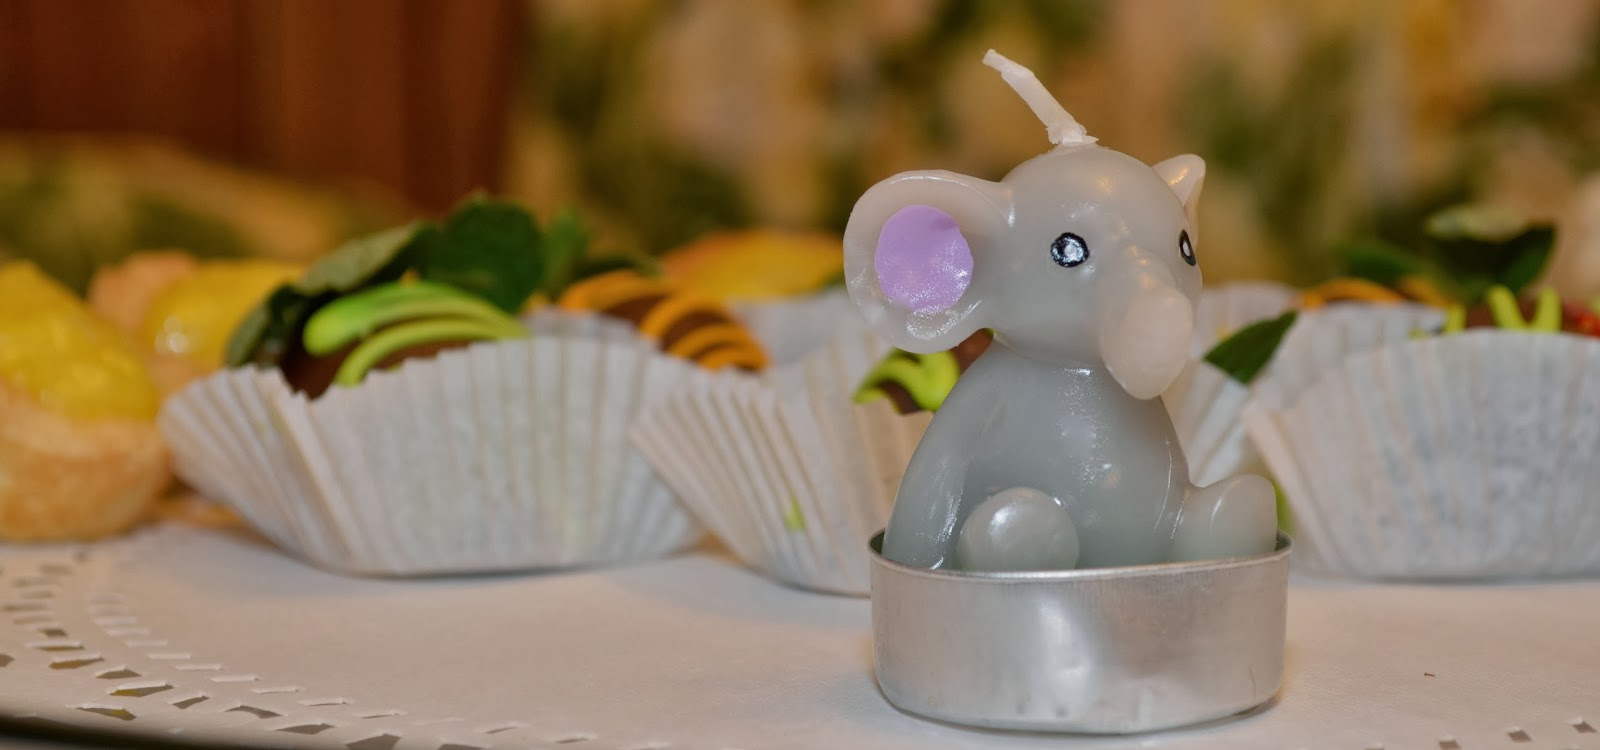 Baby elephant candle on tray of chocolate dipped strawberries and lemon tarts